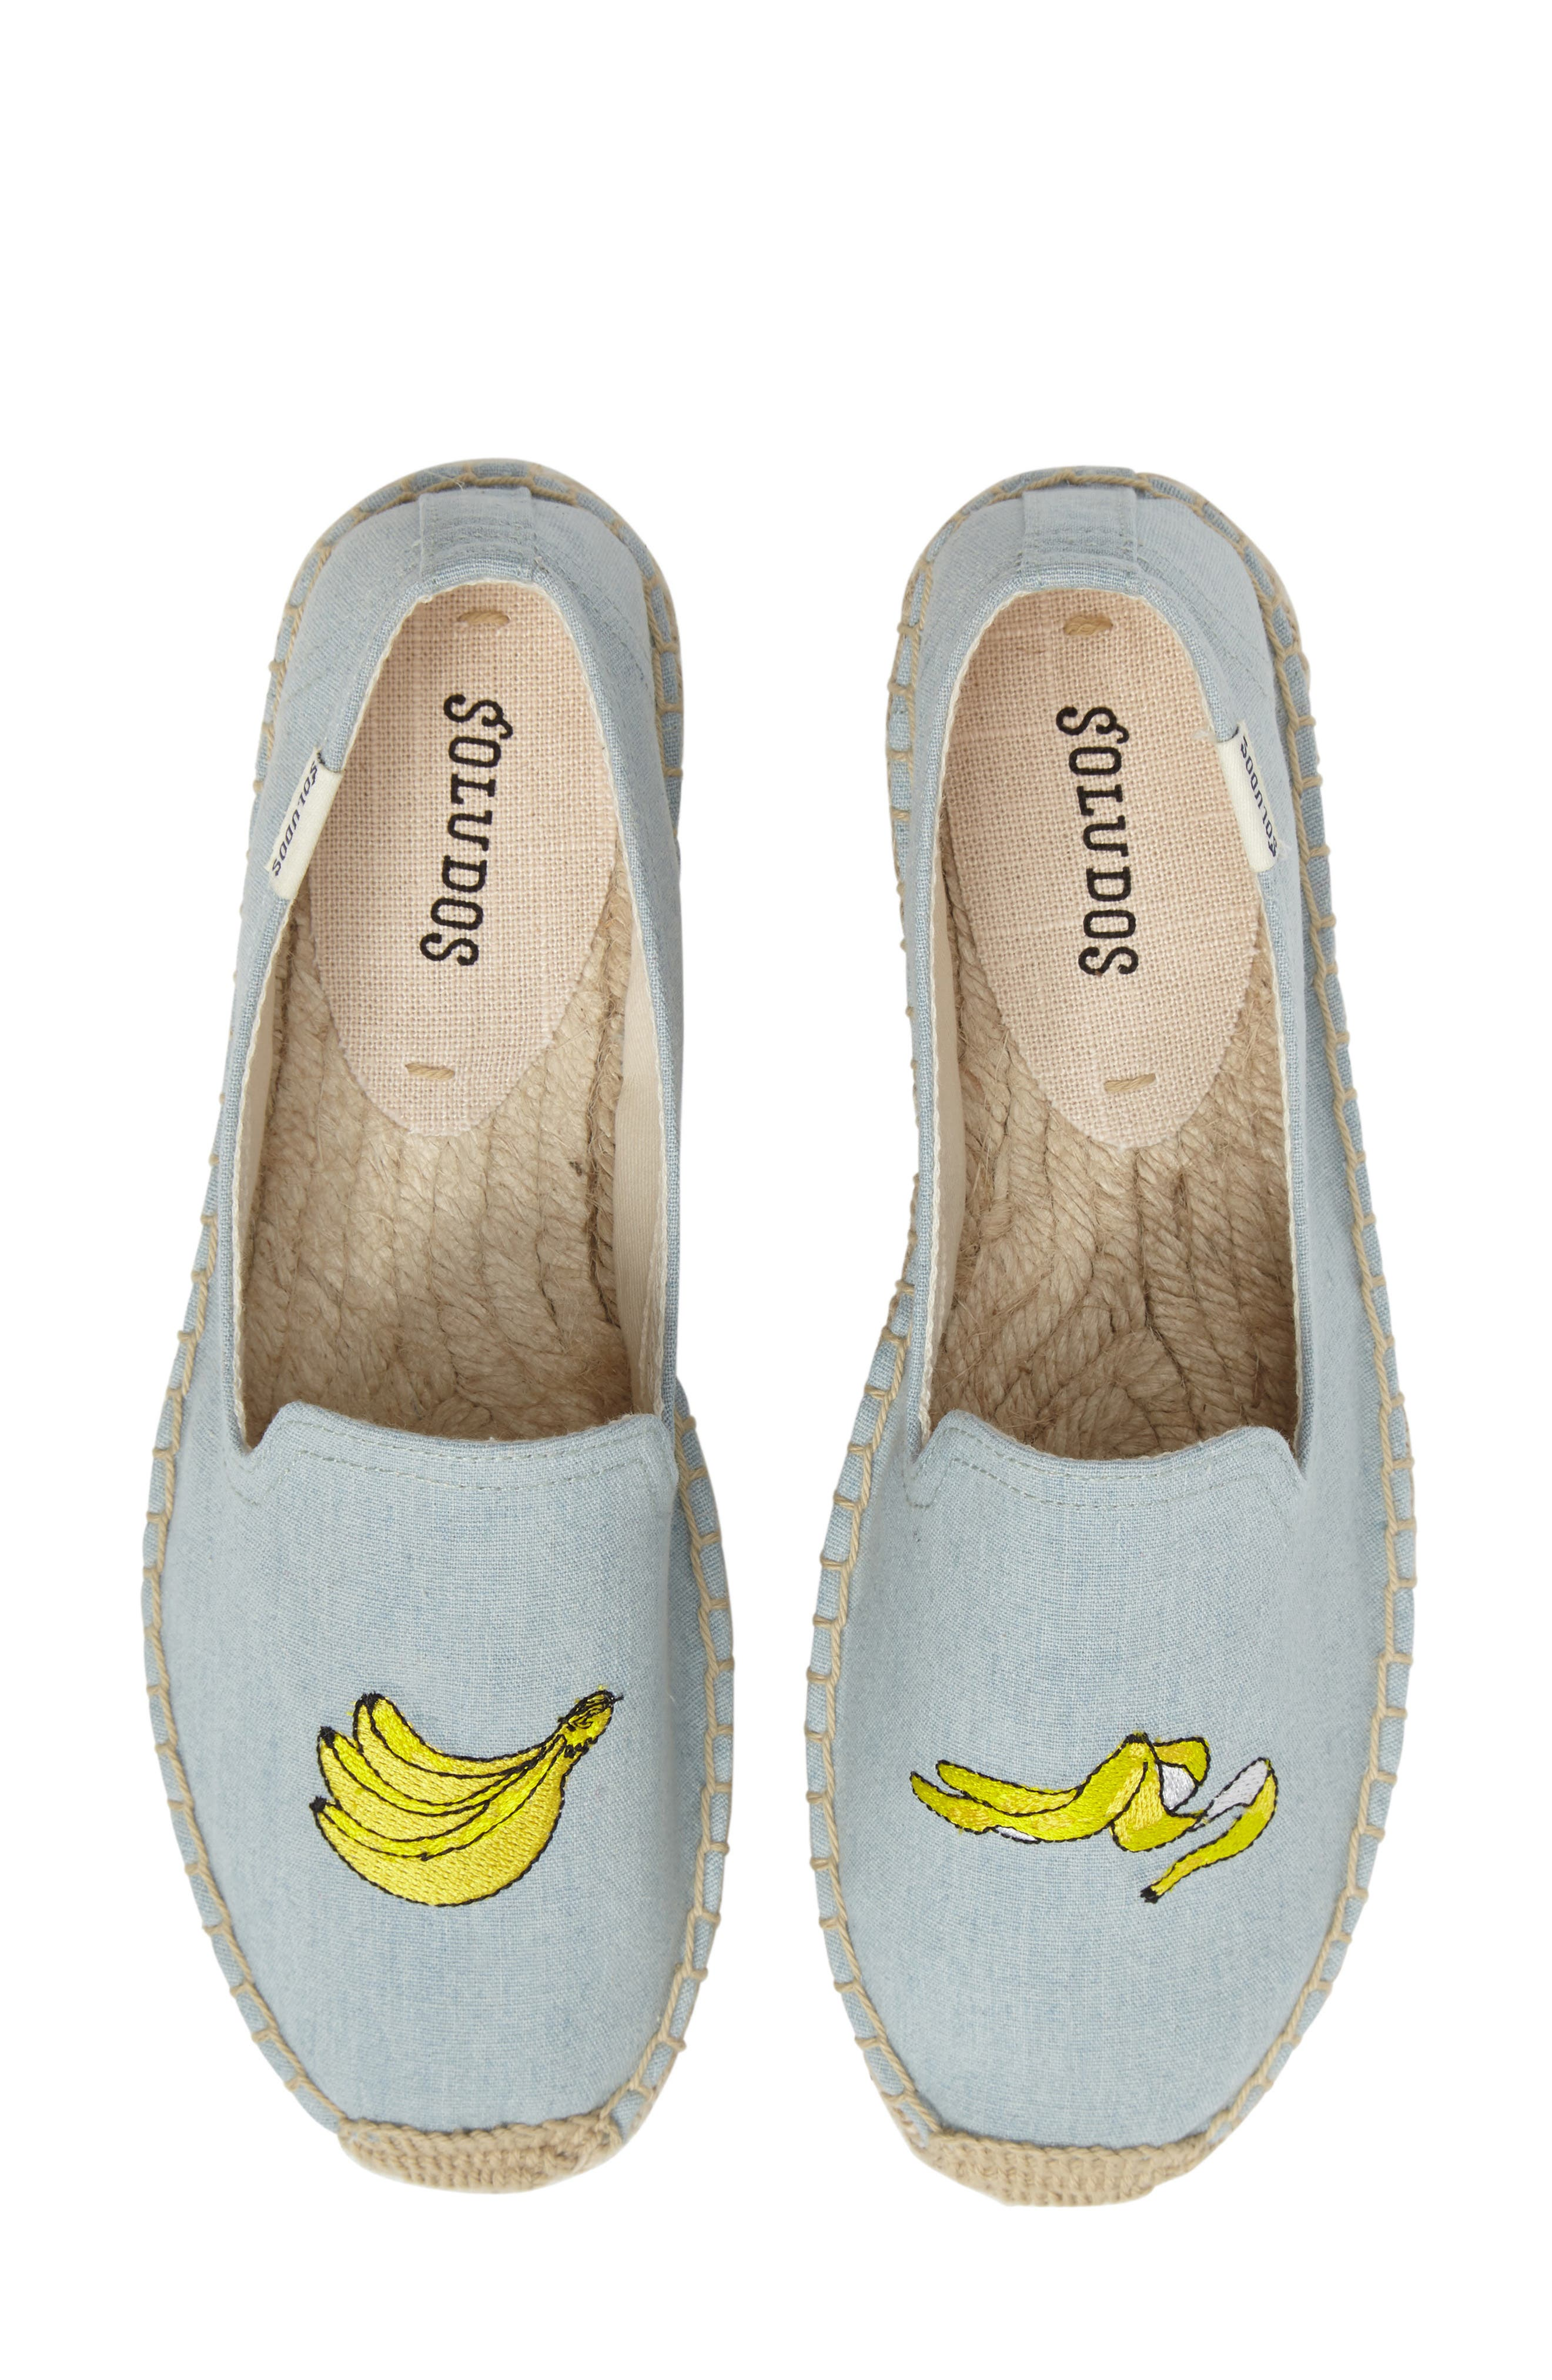 Alternate Image 1 Selected - Soludos Embroidered Espadrille Slip-On (Women)